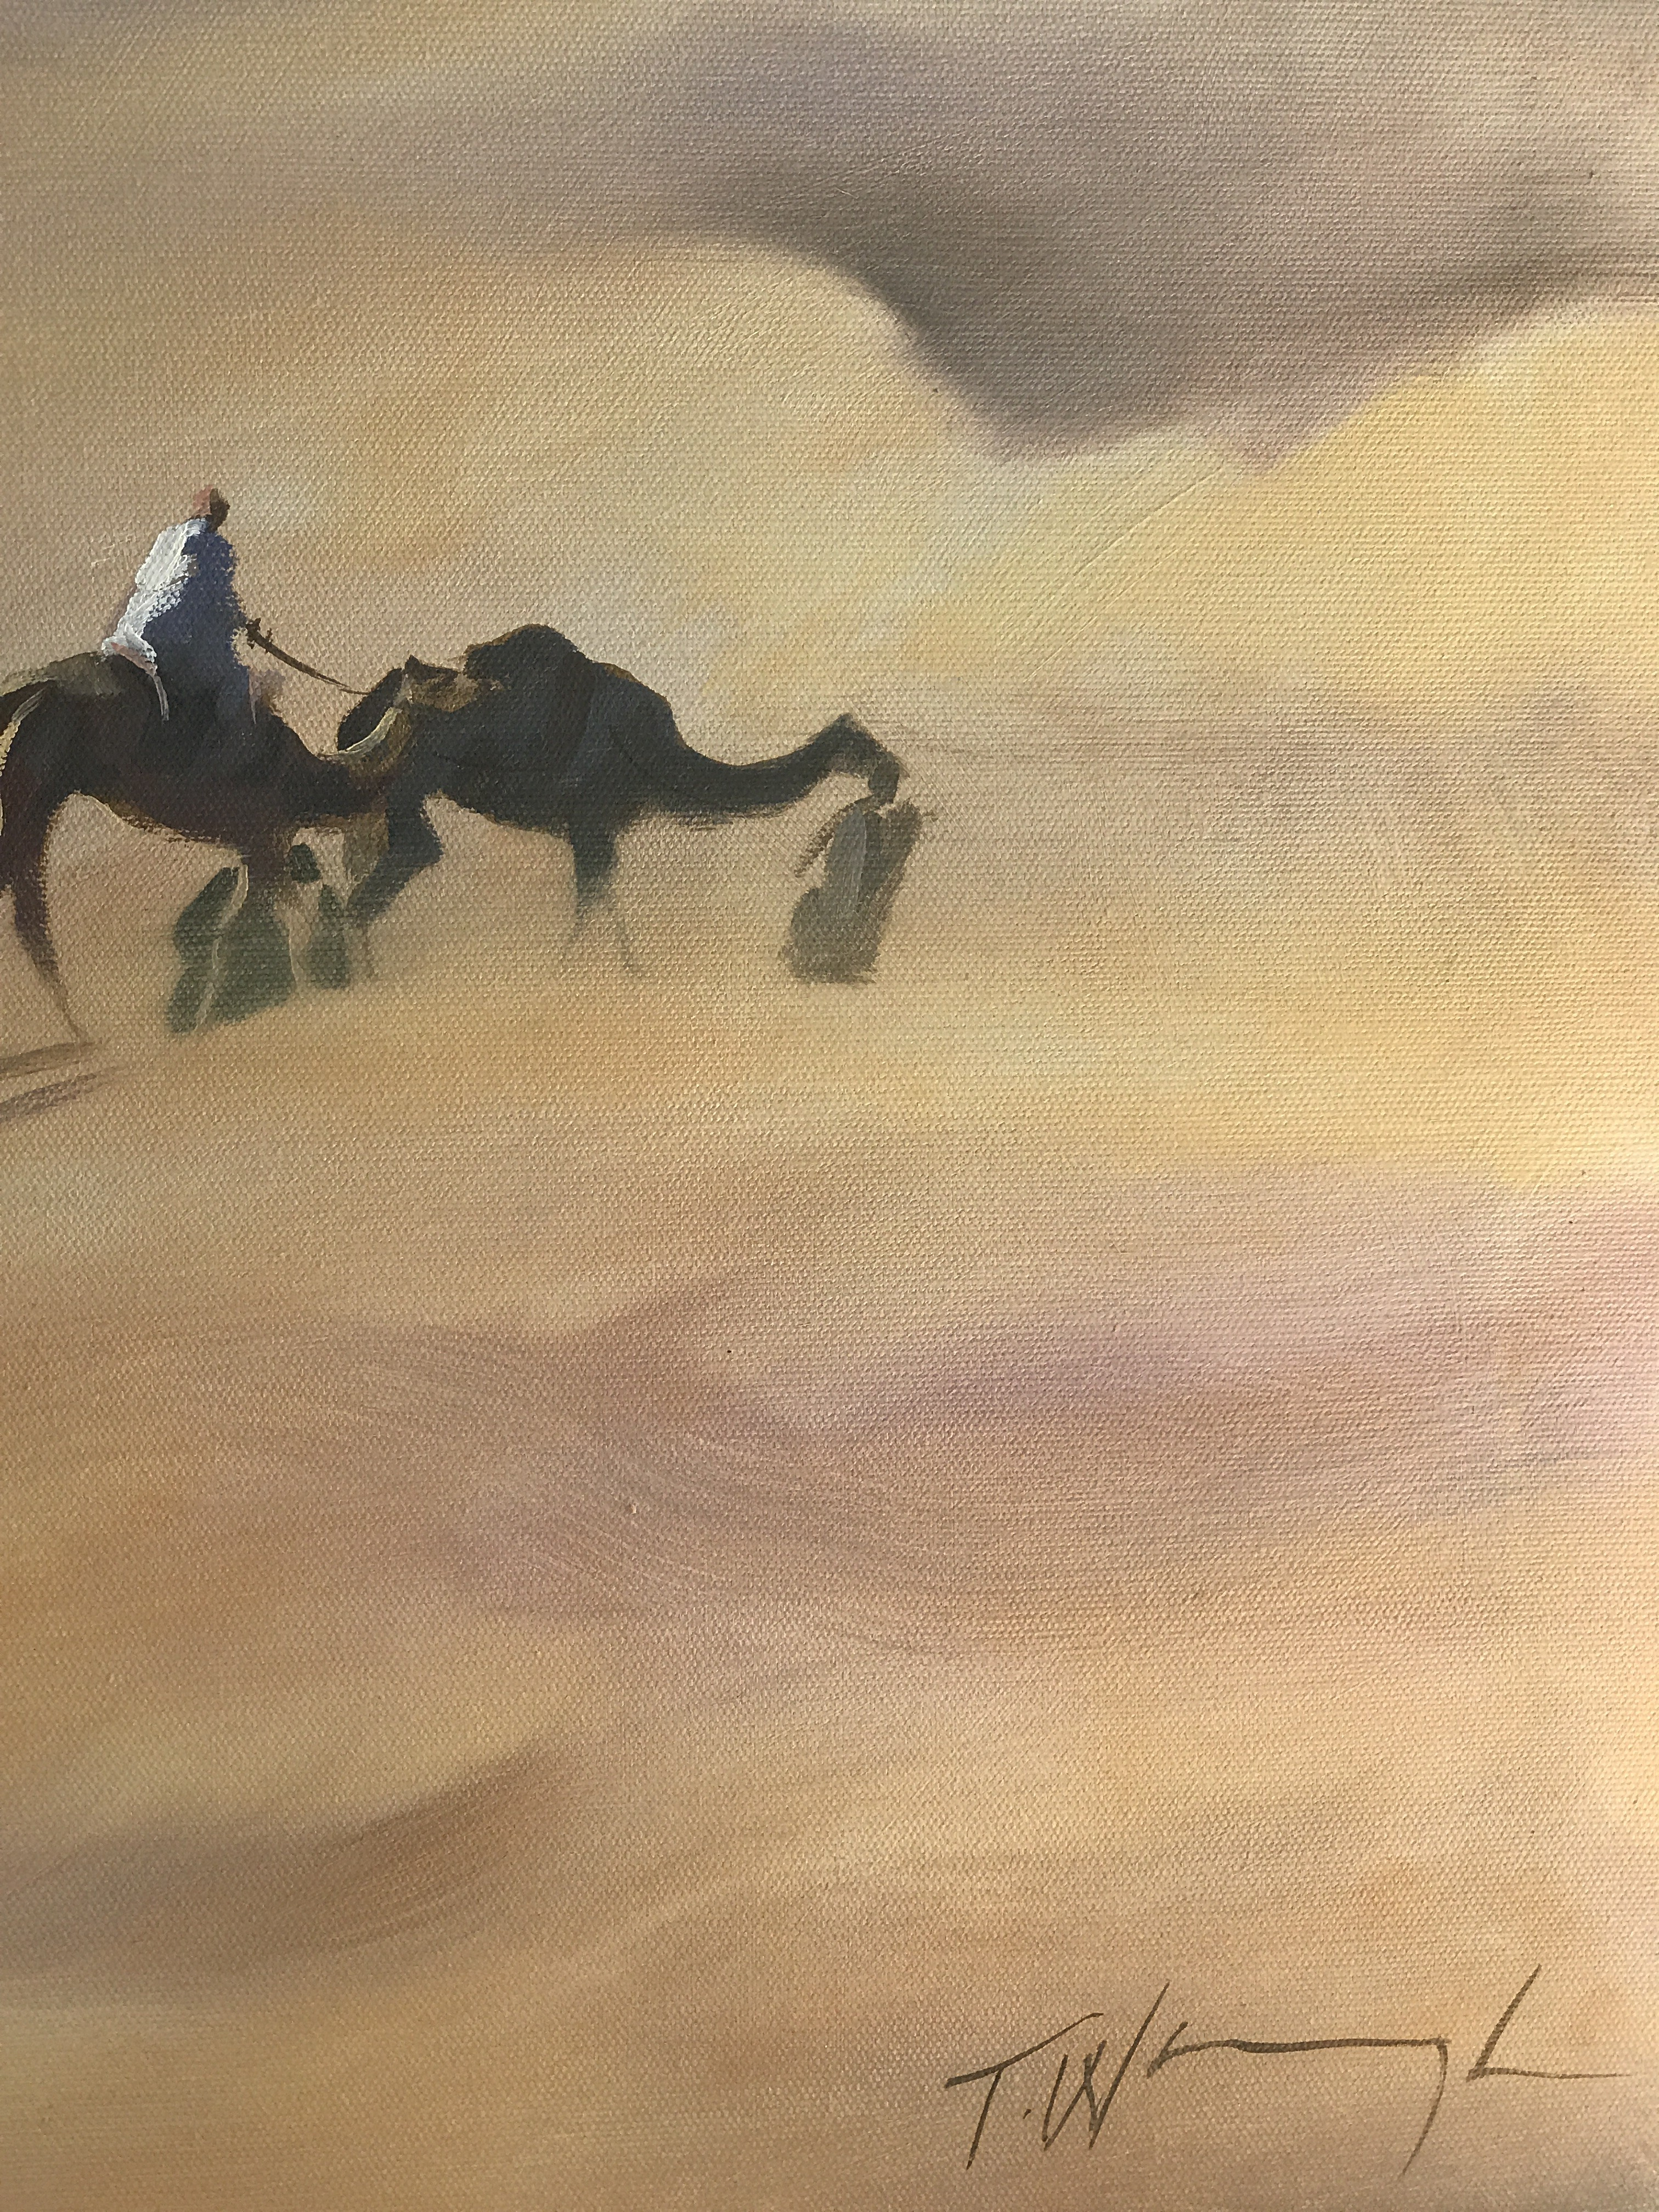 The Rhub Al Khali is an original Trevor Waugh oil painting. The brush strokes make for a rich, well textured painting.